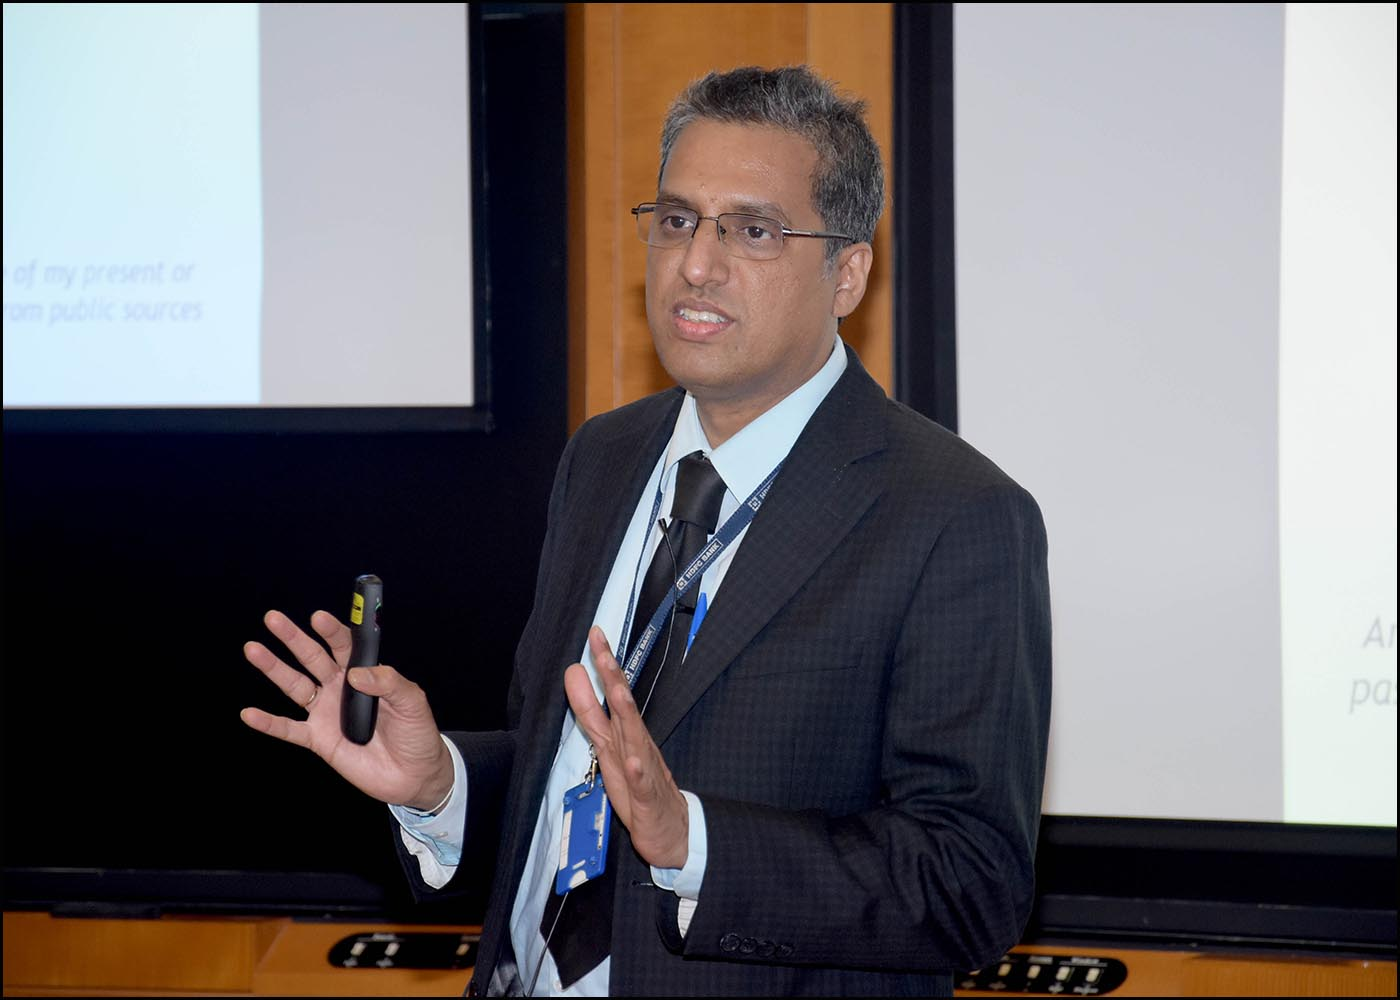 Shri. Bharan Guntupalli, Head of Operational Risk, HDFC Bank Ltd.